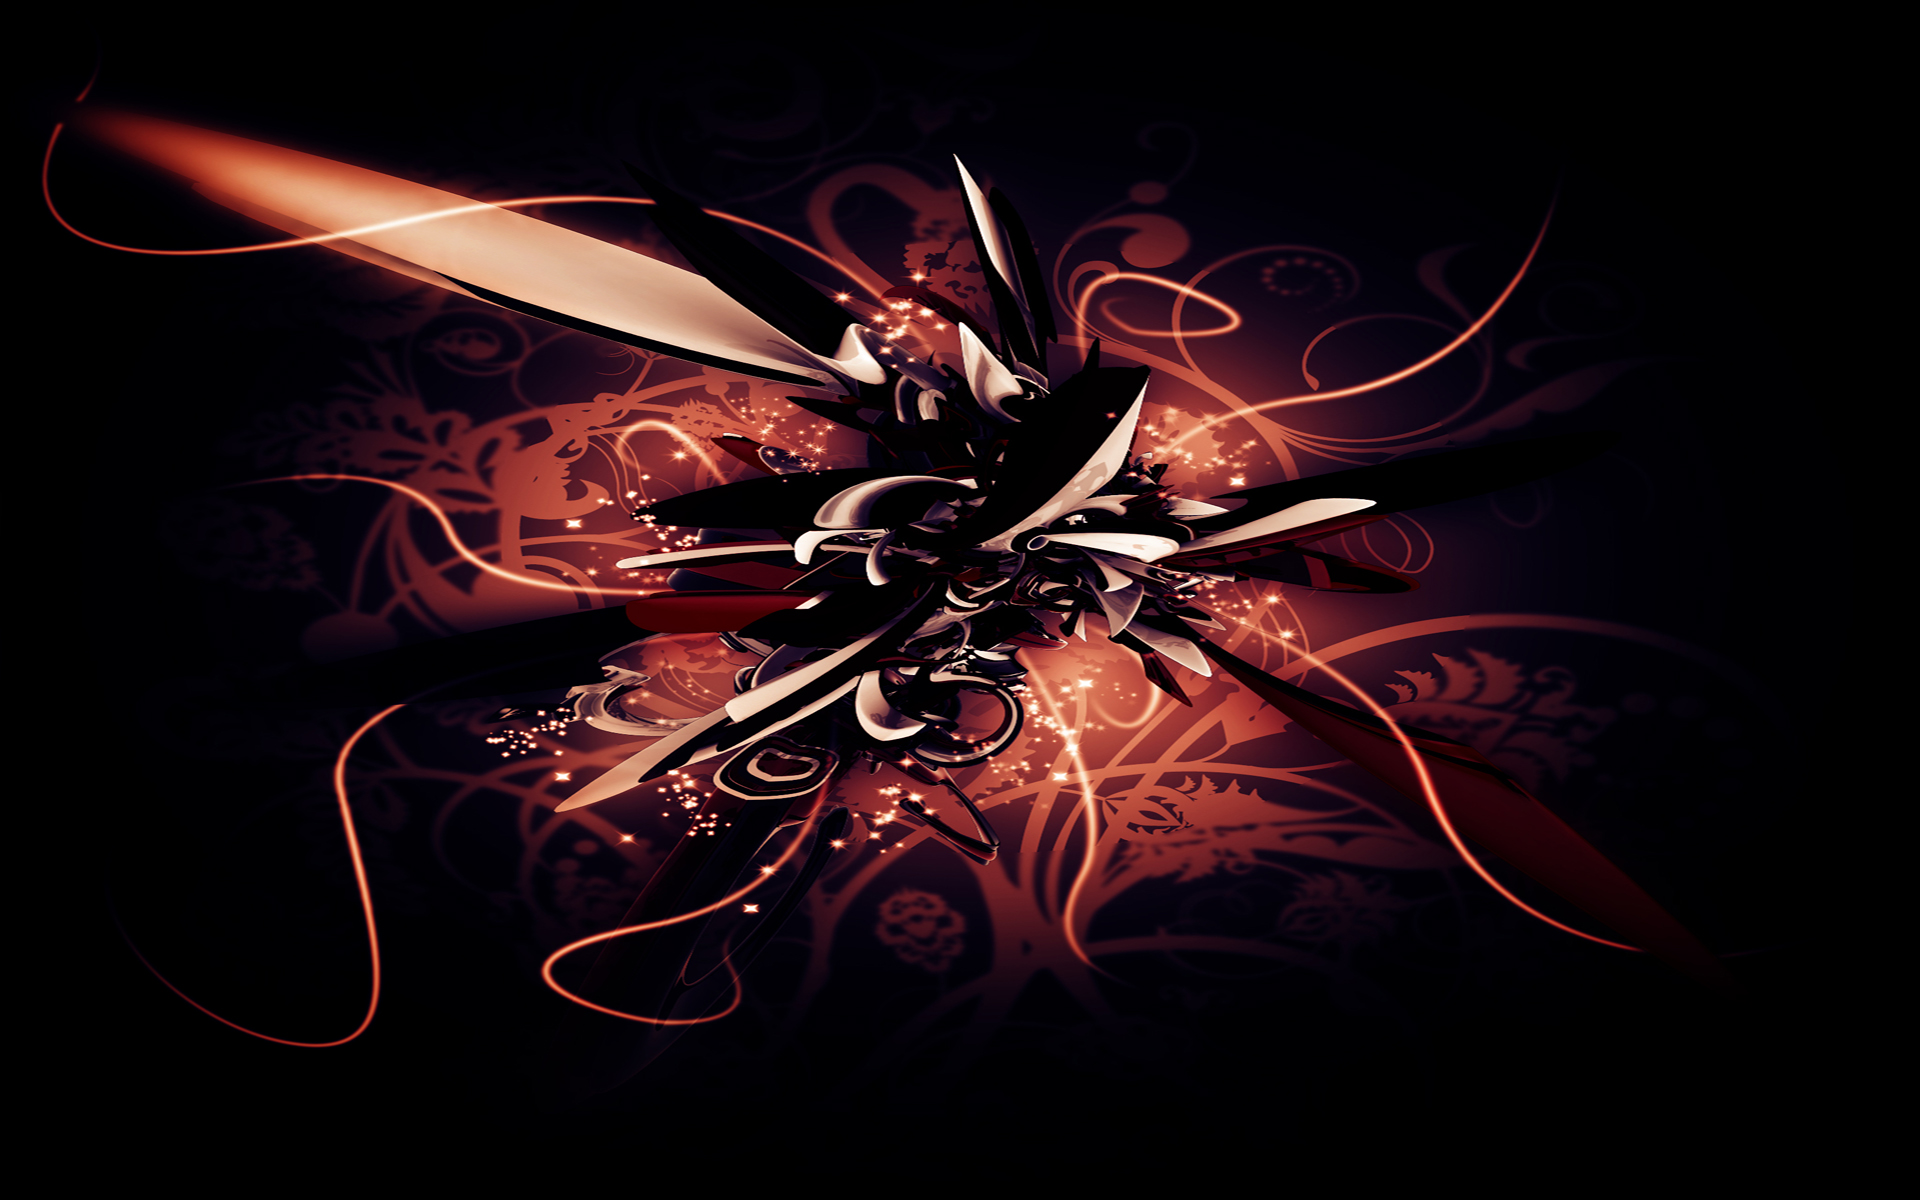 3d Graphic Wallpaper 1280x1024 103 Swirl Hd Wallpapers Backgrounds Wallpaper Abyss